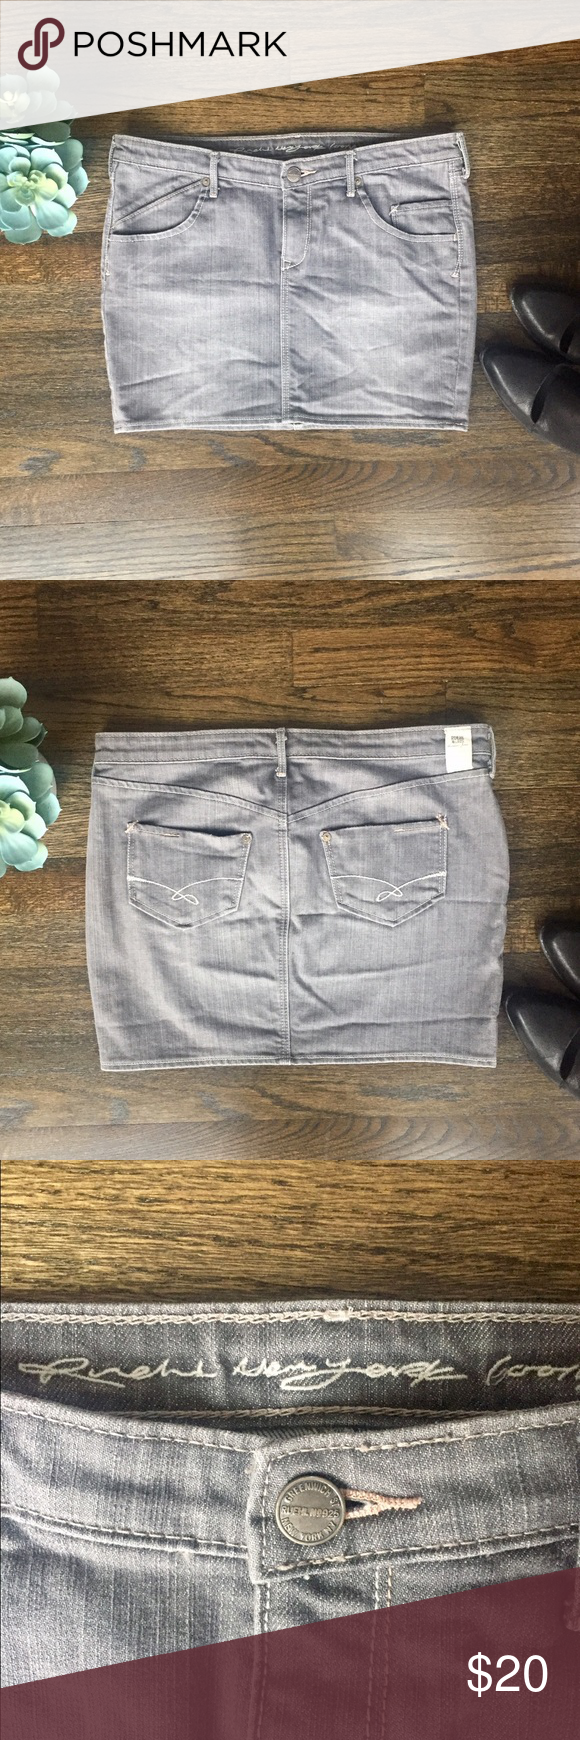 Ruehl Jean Mini Skirt Gray mini denim skirt from Ruehl. Slightly distressed look, white and baby pink stitching, silver hardware, five pockets, and zip fly. In like-new condition. Ruehl No. 925 Skirts Mini